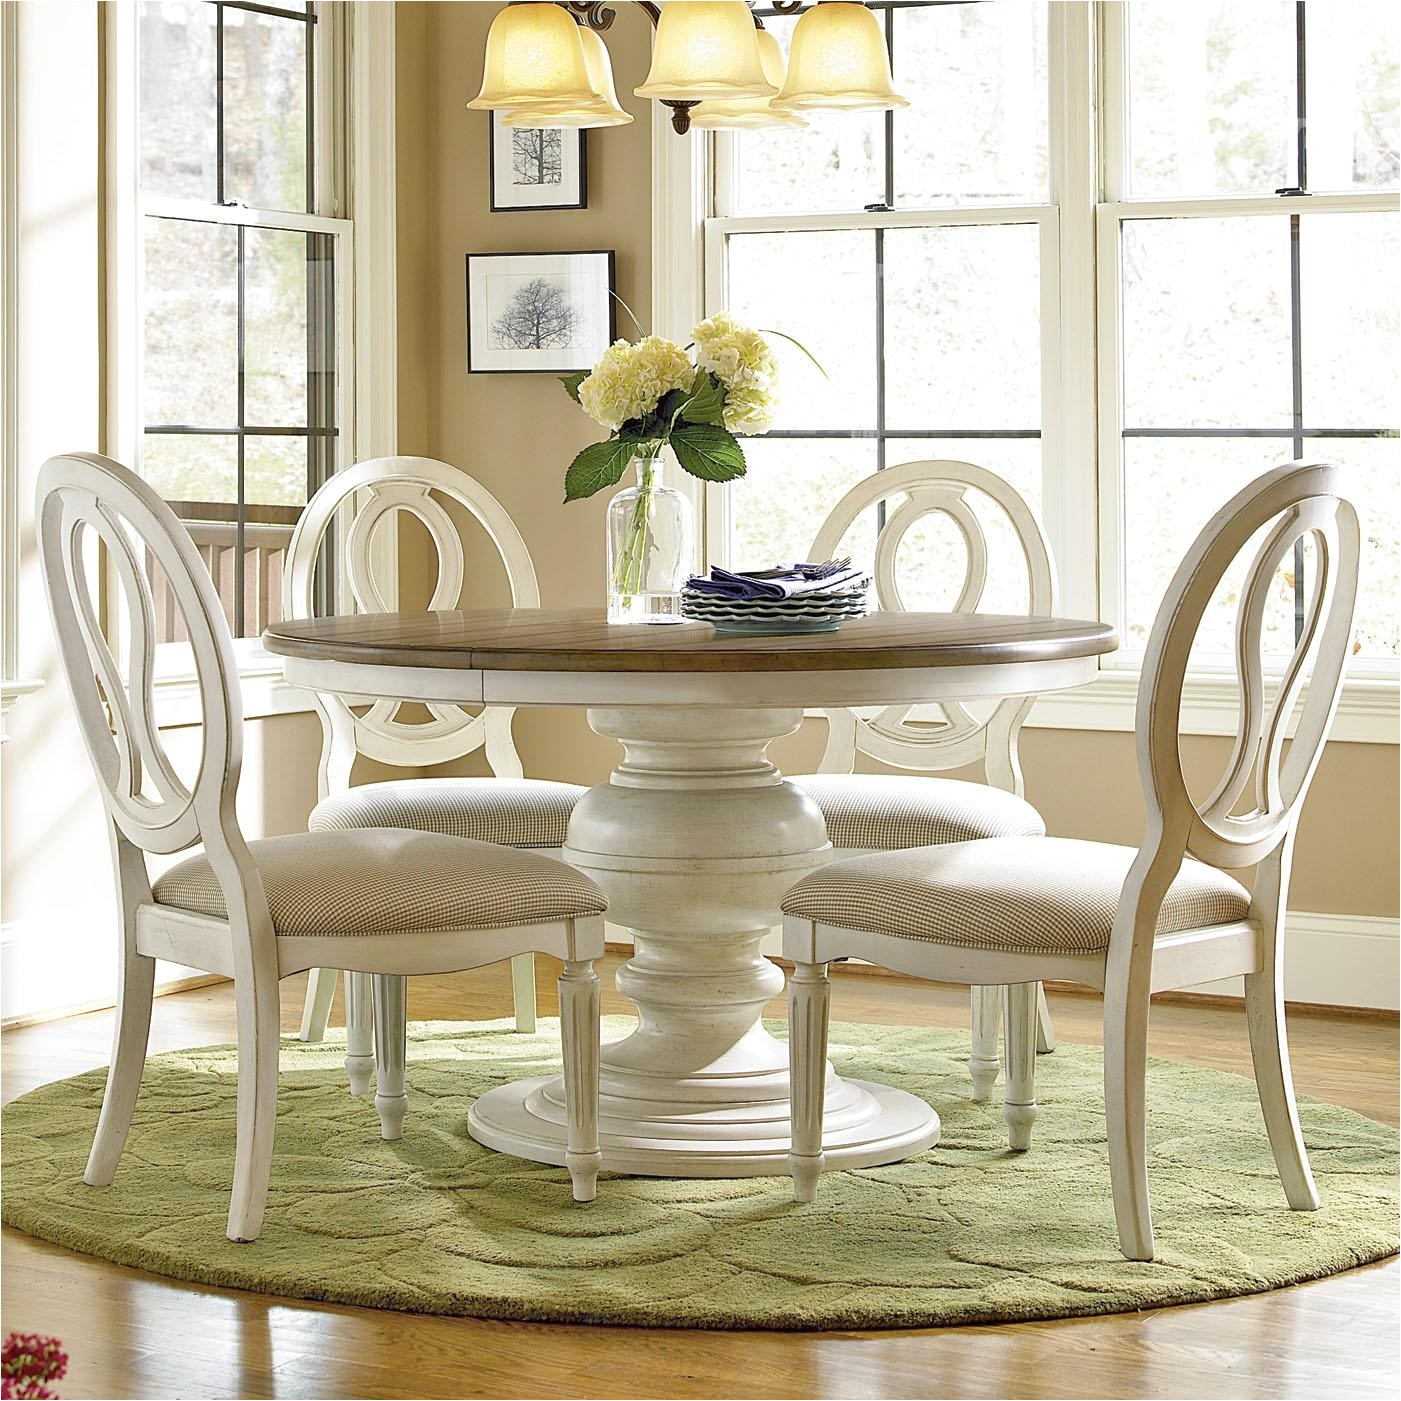 Baers Dining Room Sets Universal Summer Hill 5 Piece Dining Set with Pierced Back